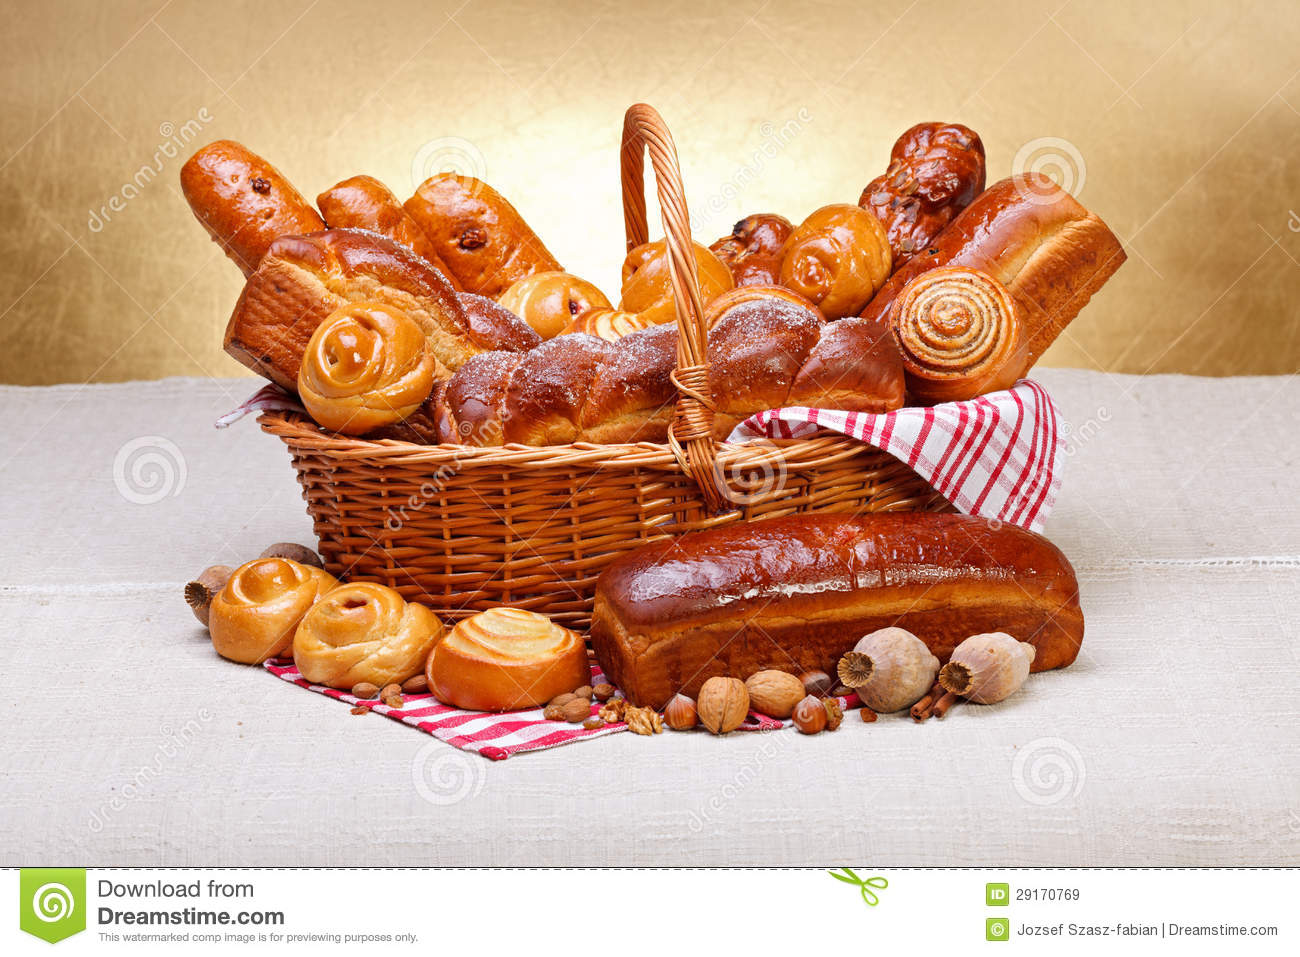 business plan for bakery products better business bureau resume